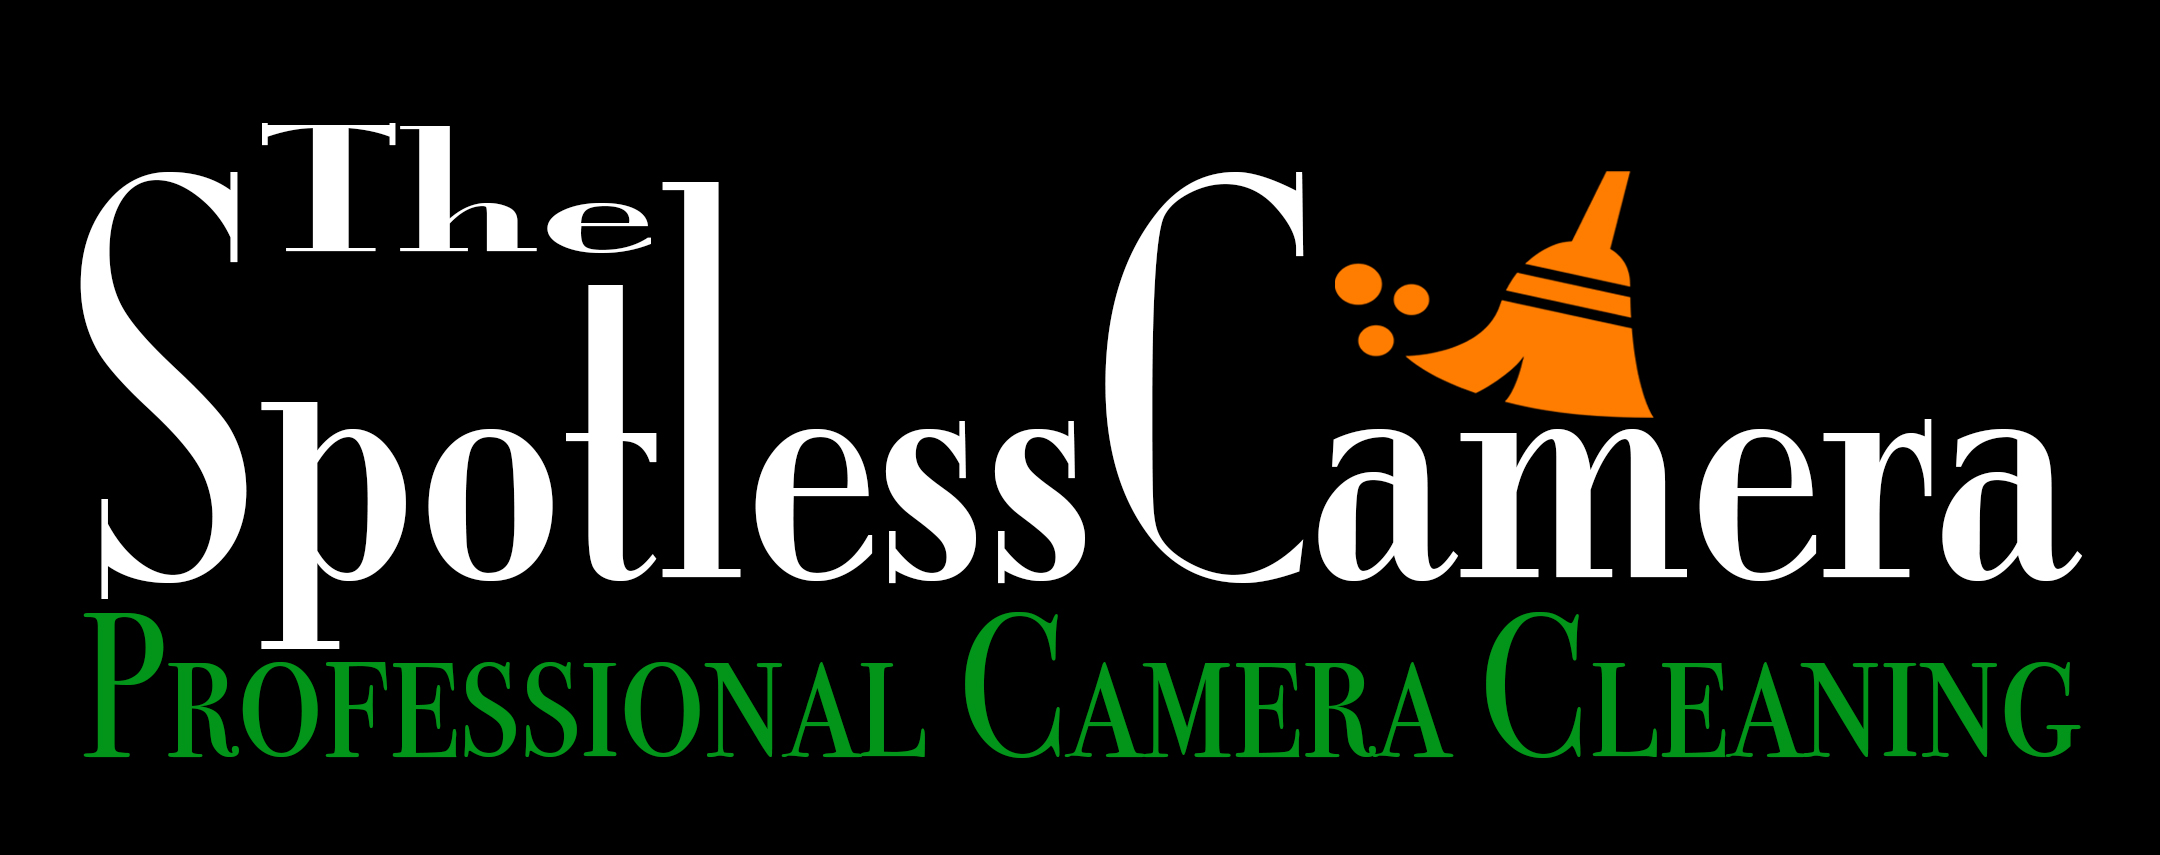 Professional Camera Cleaning